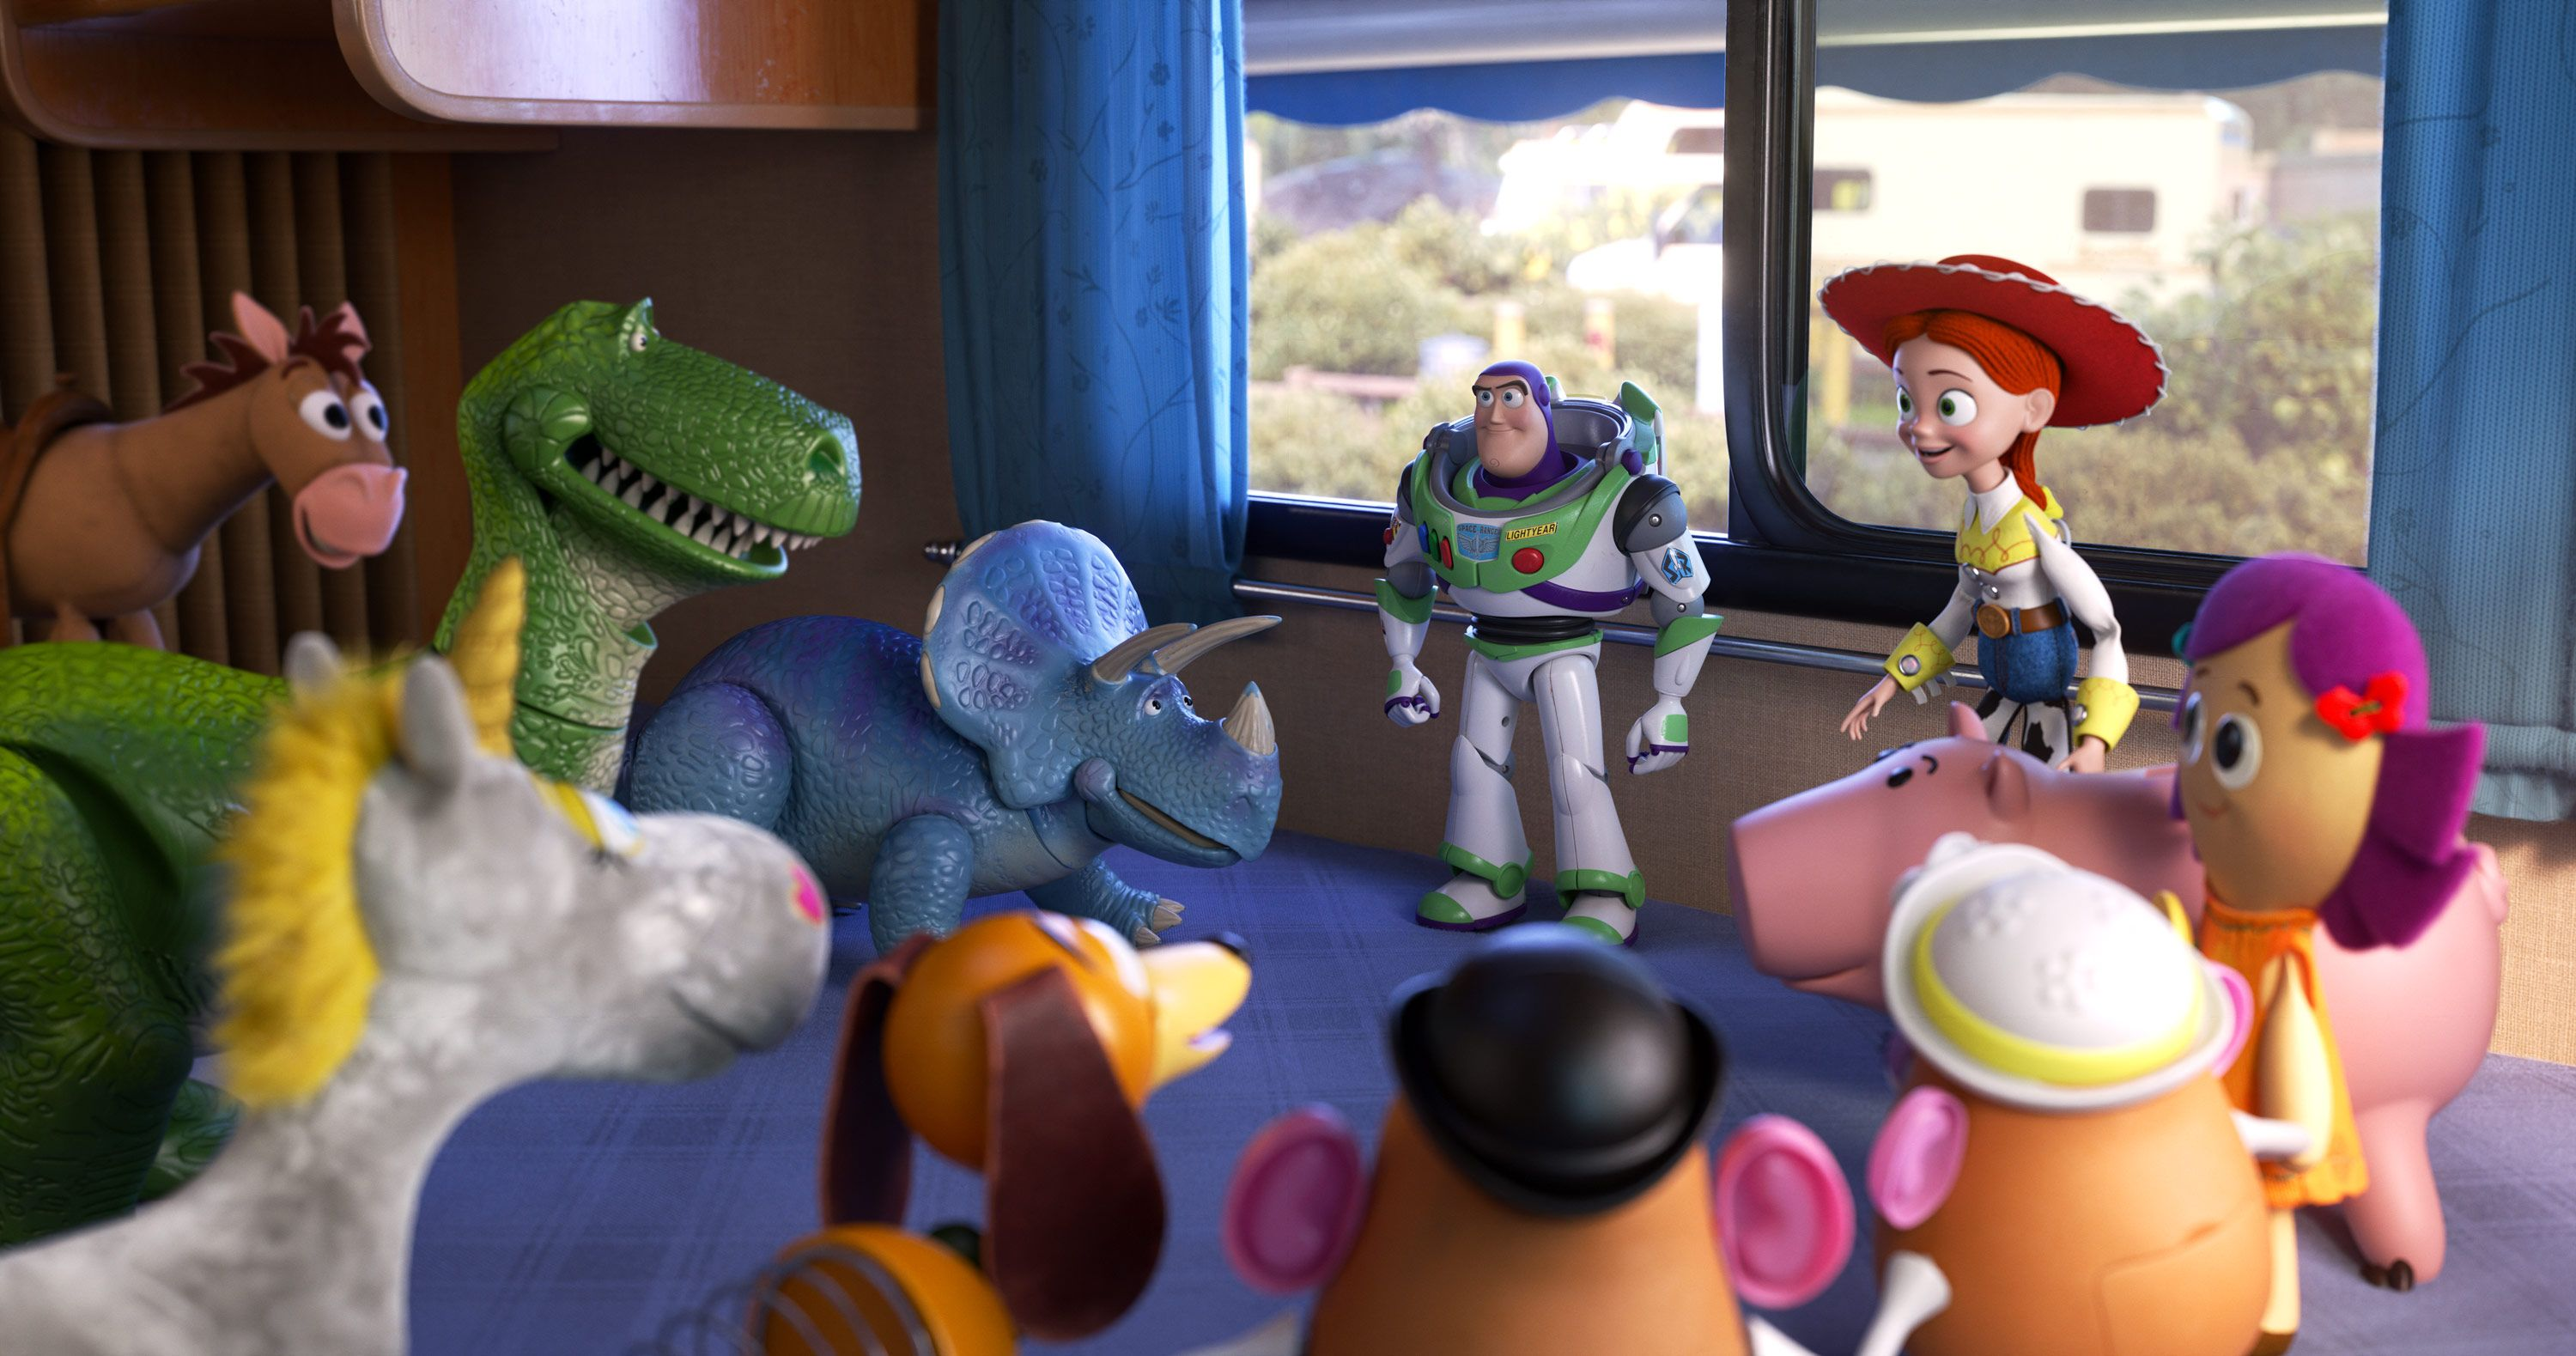 Toy Story 4 ending - Will there be a Toy Story 5?